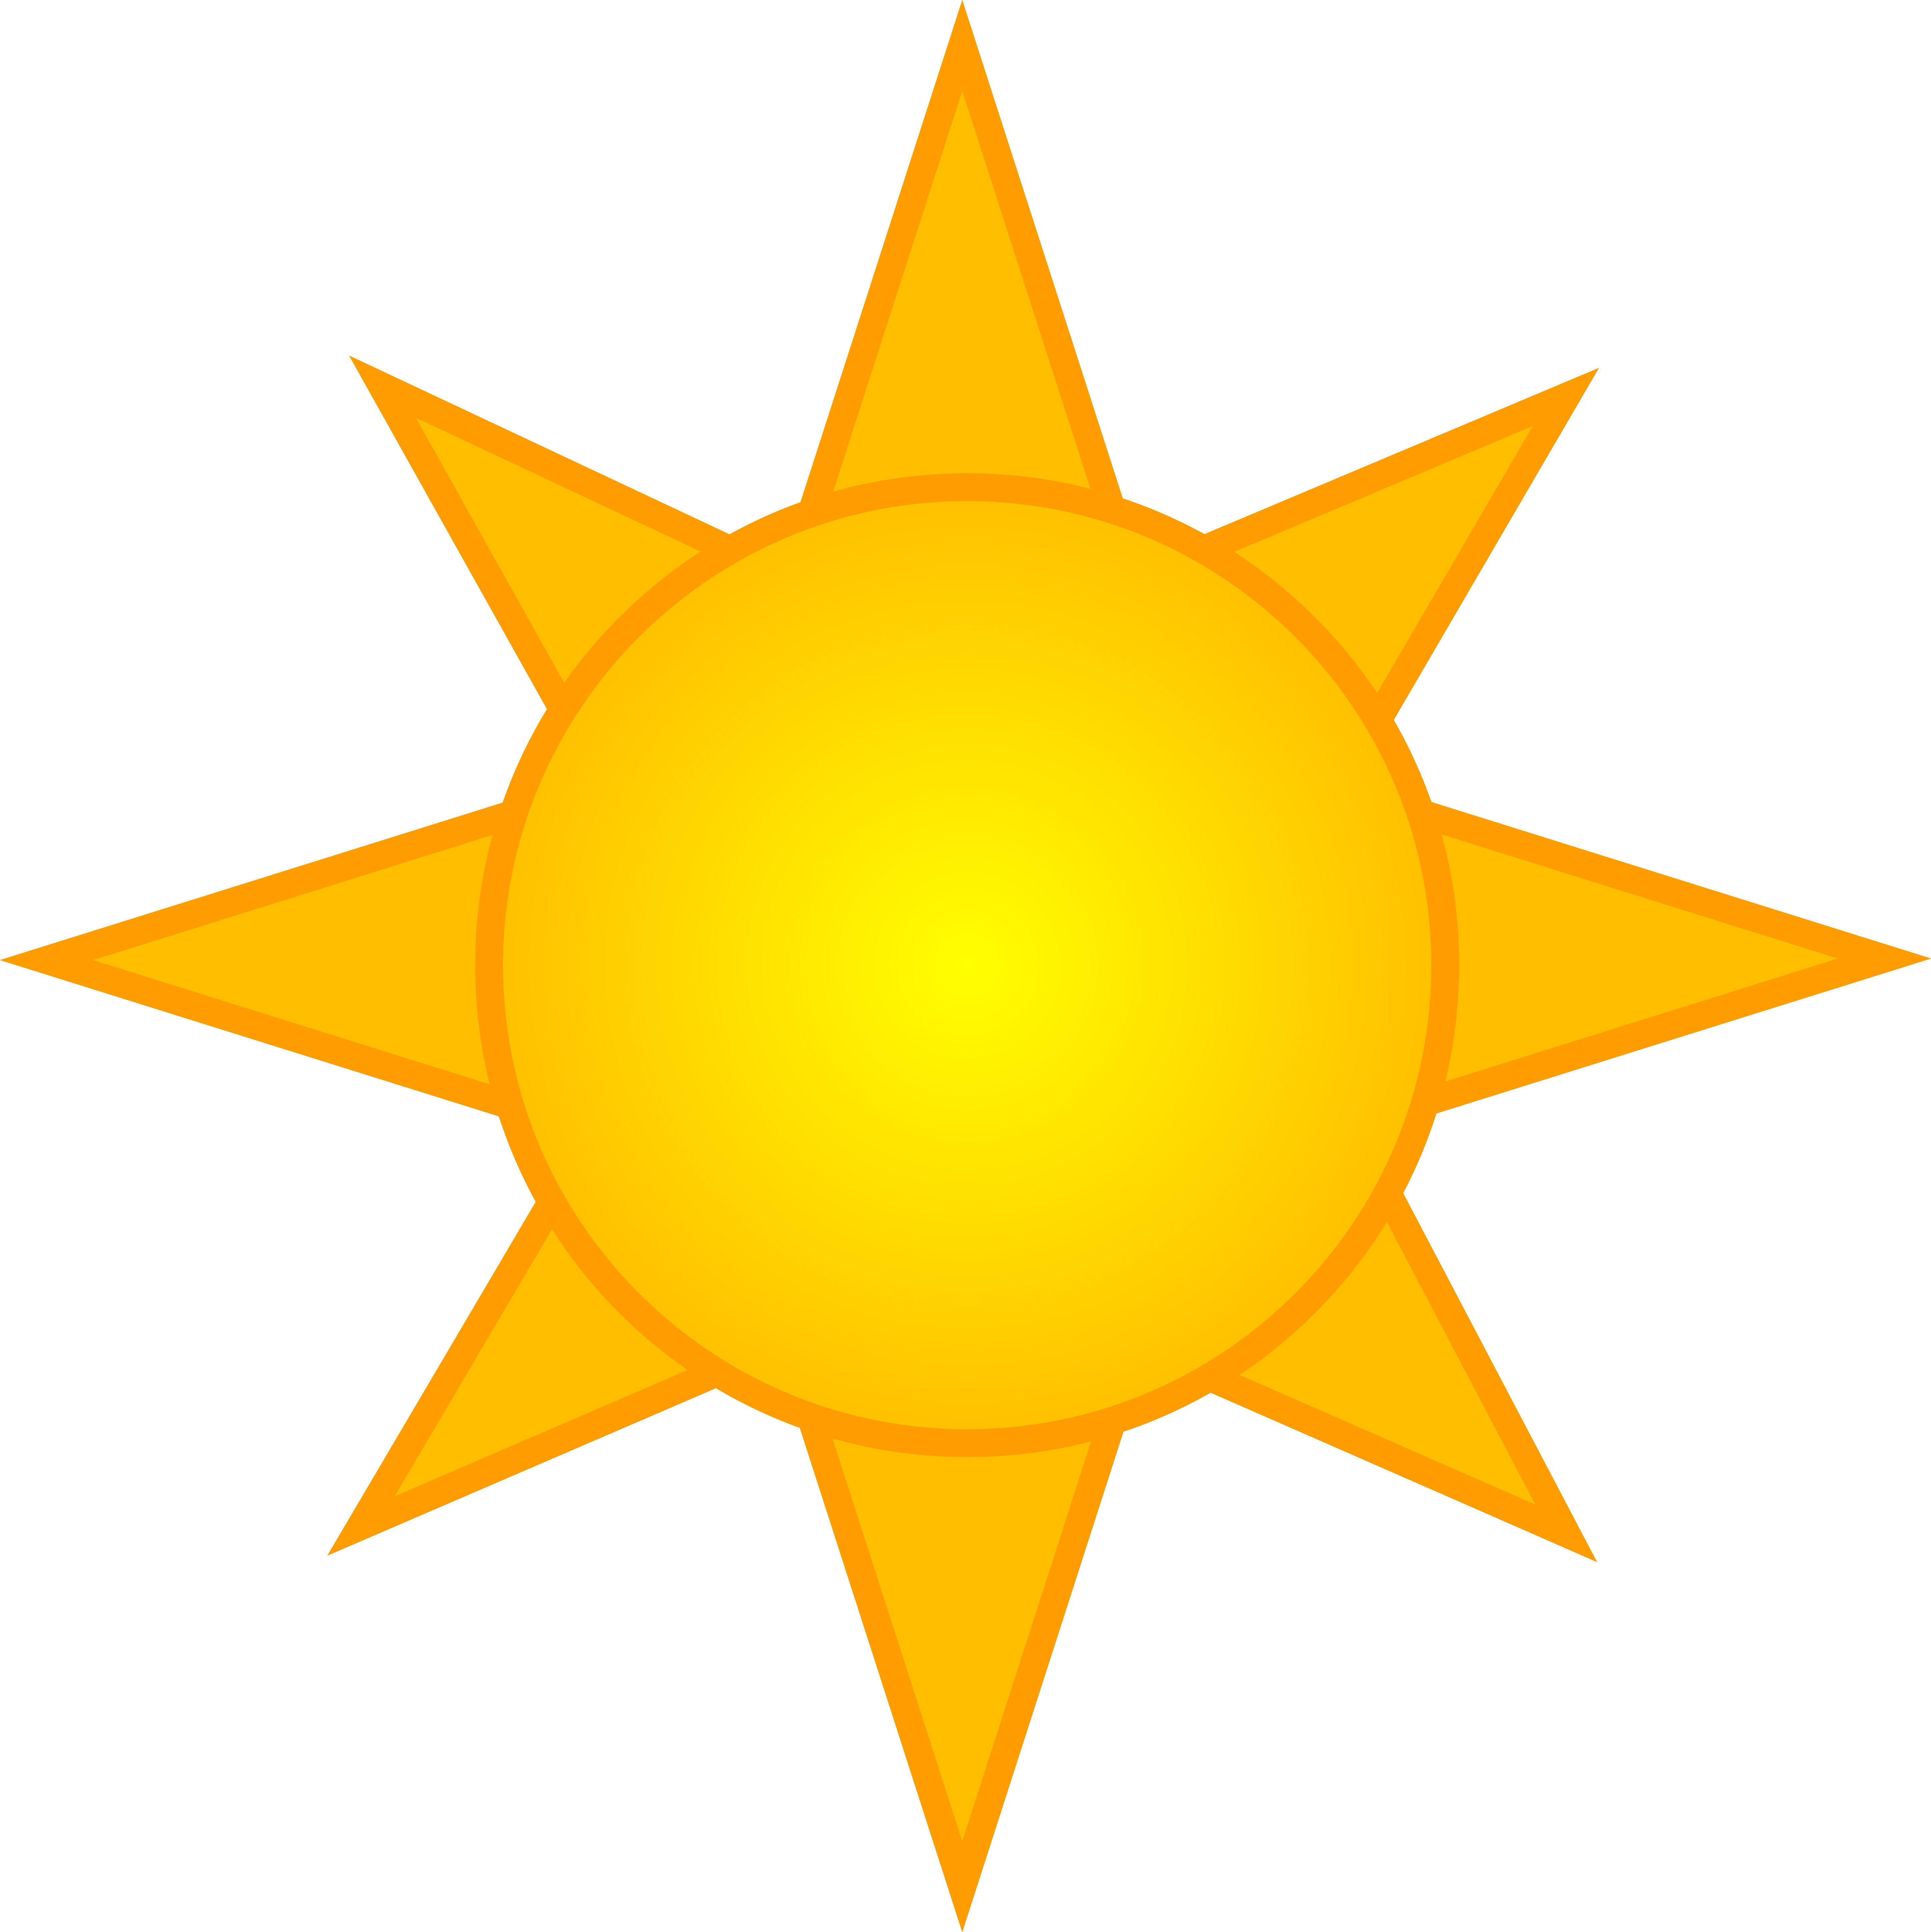 free sun clipart images.